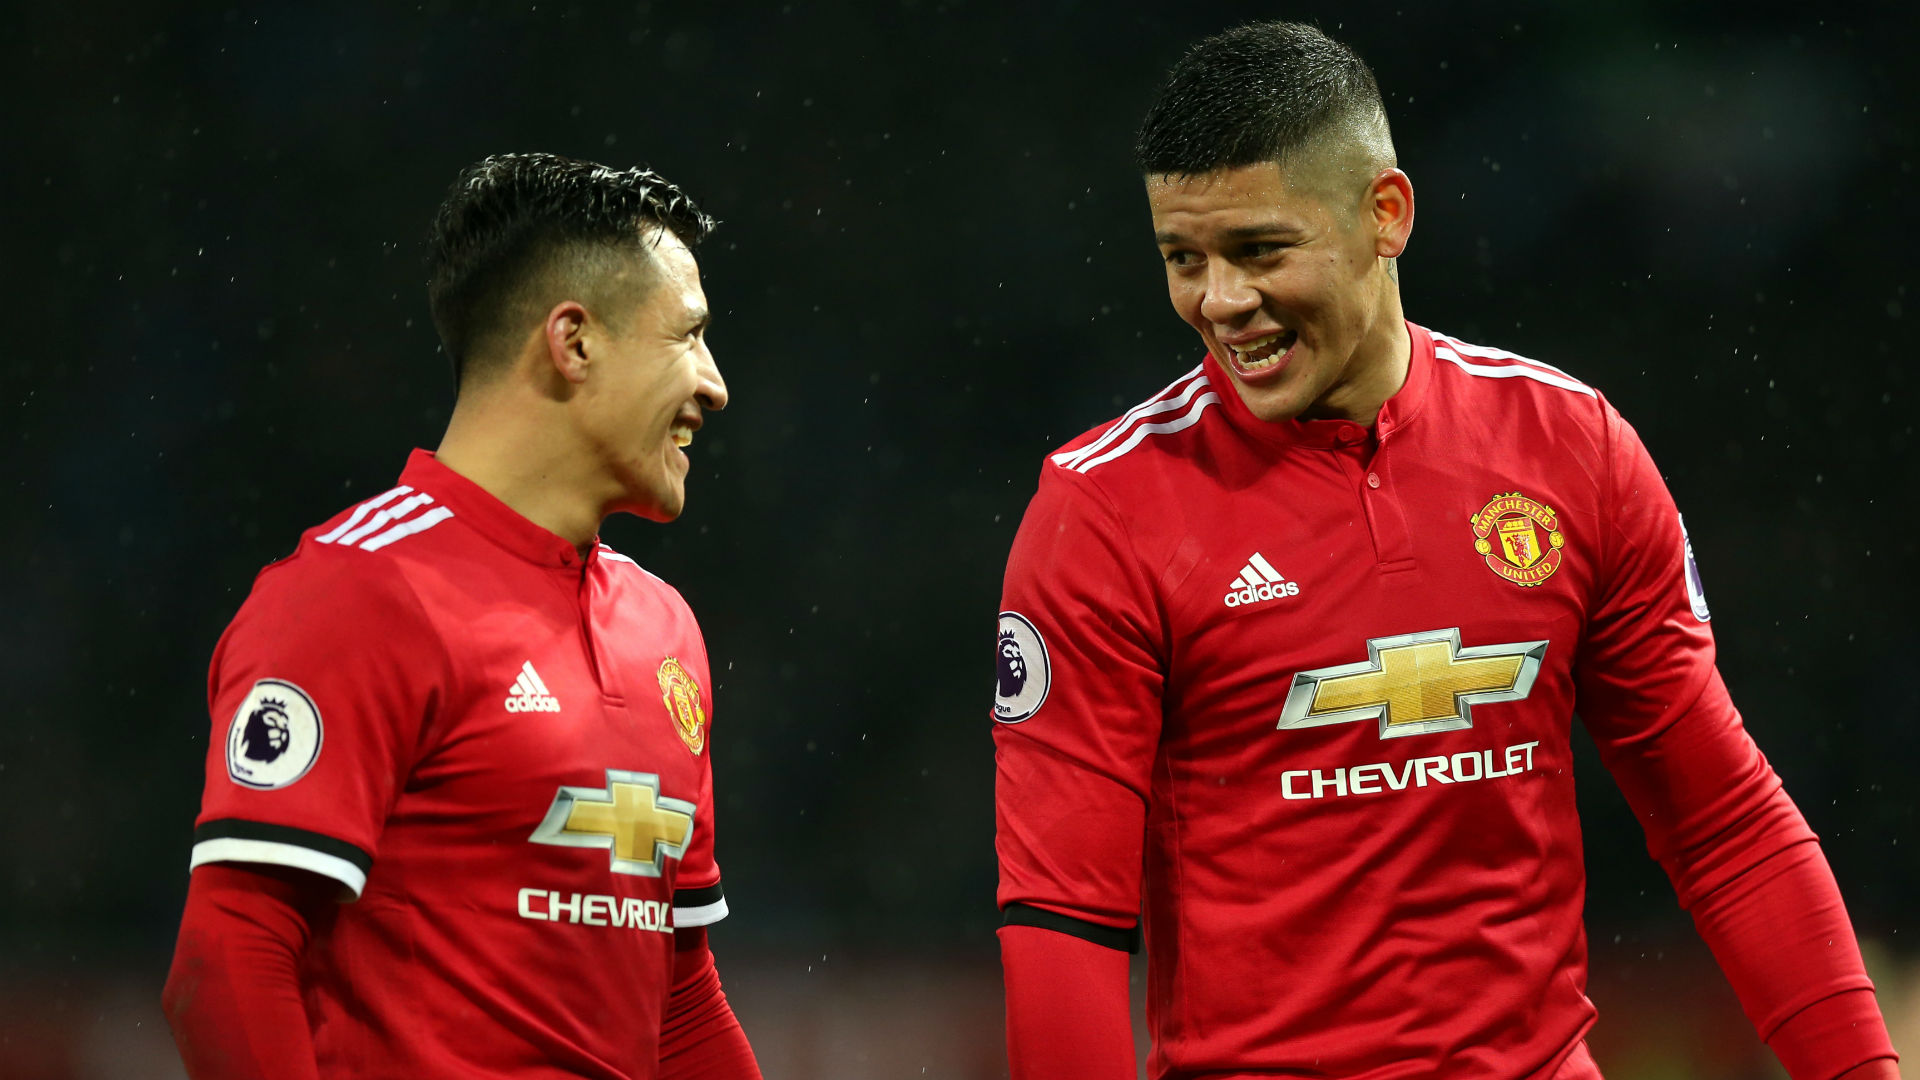 Marcos Rojo Renews With Manchester United Until 2021 Epl News Stadium Astro